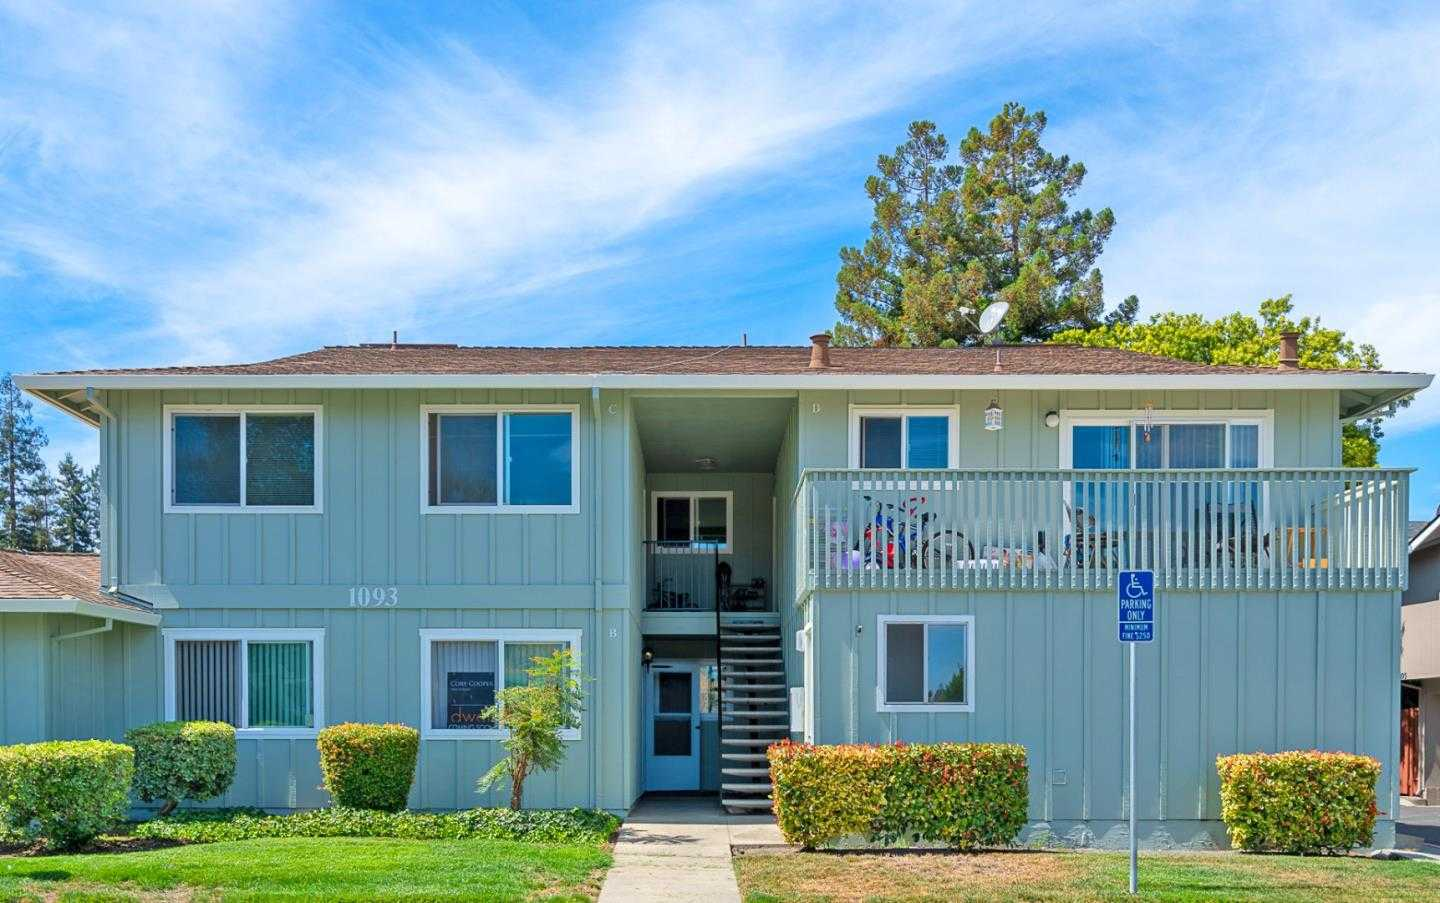 Homes for Sale in Sunnyvale - Barbara Williams | Alain Pinel ...